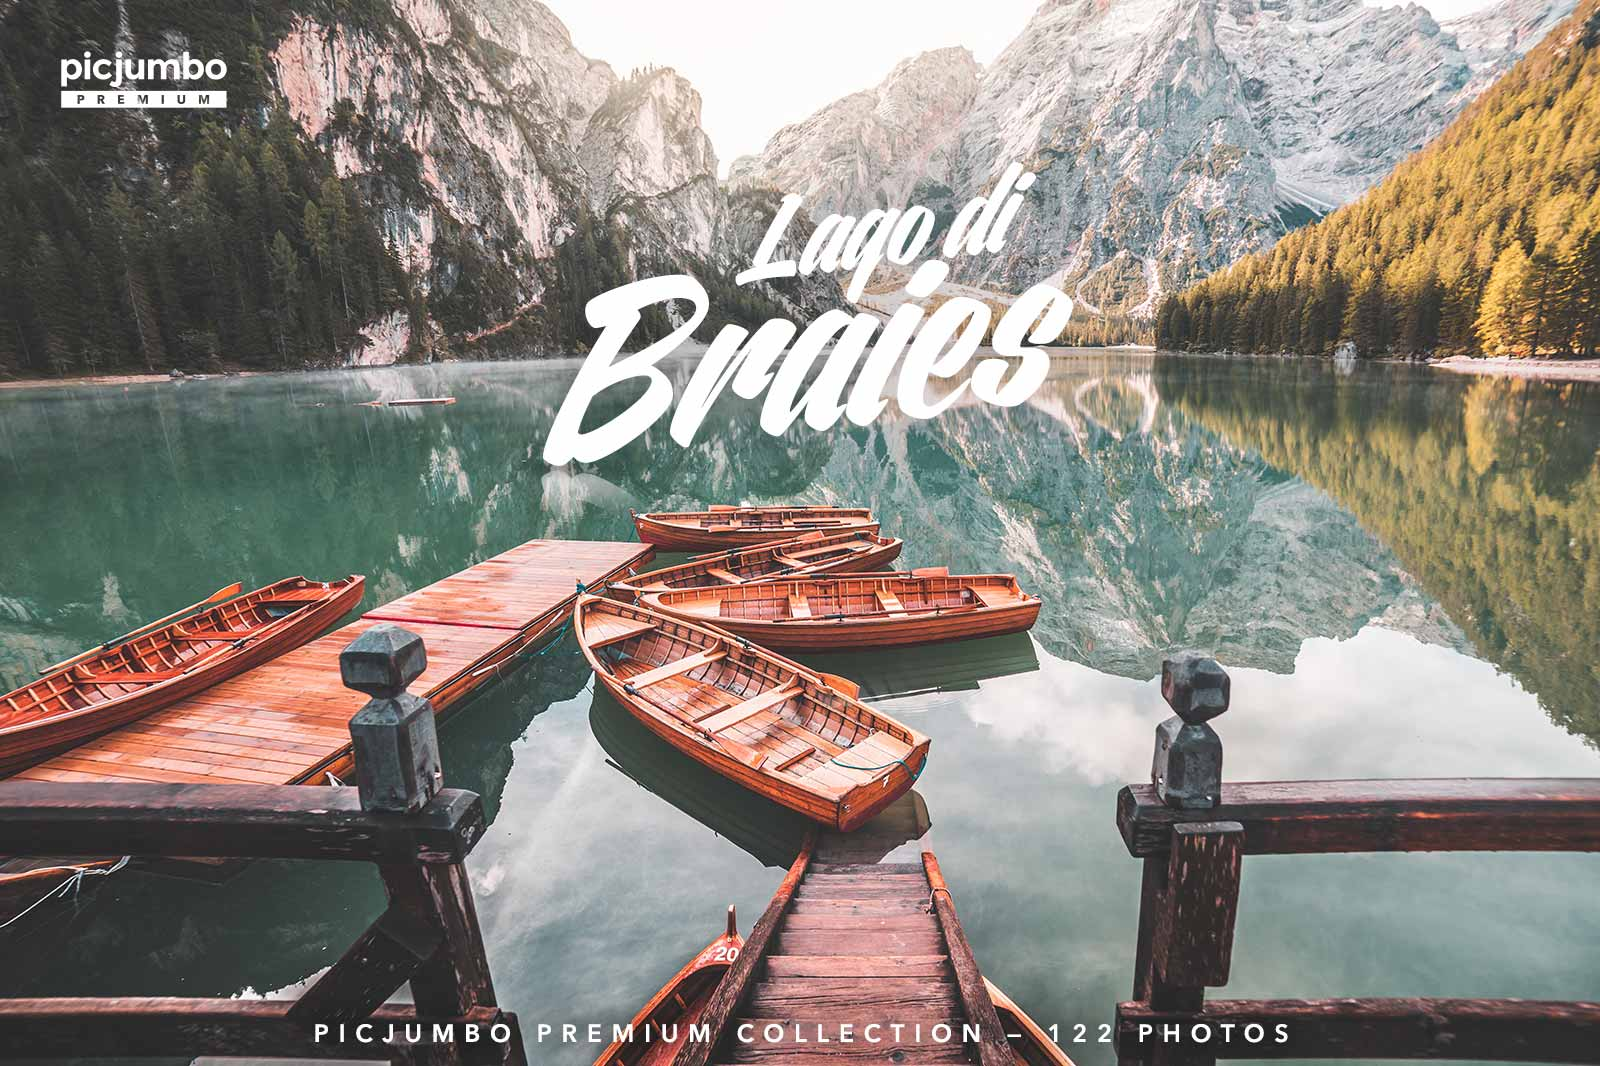 Lago di Braies — get it now in picjumbo PREMIUM!